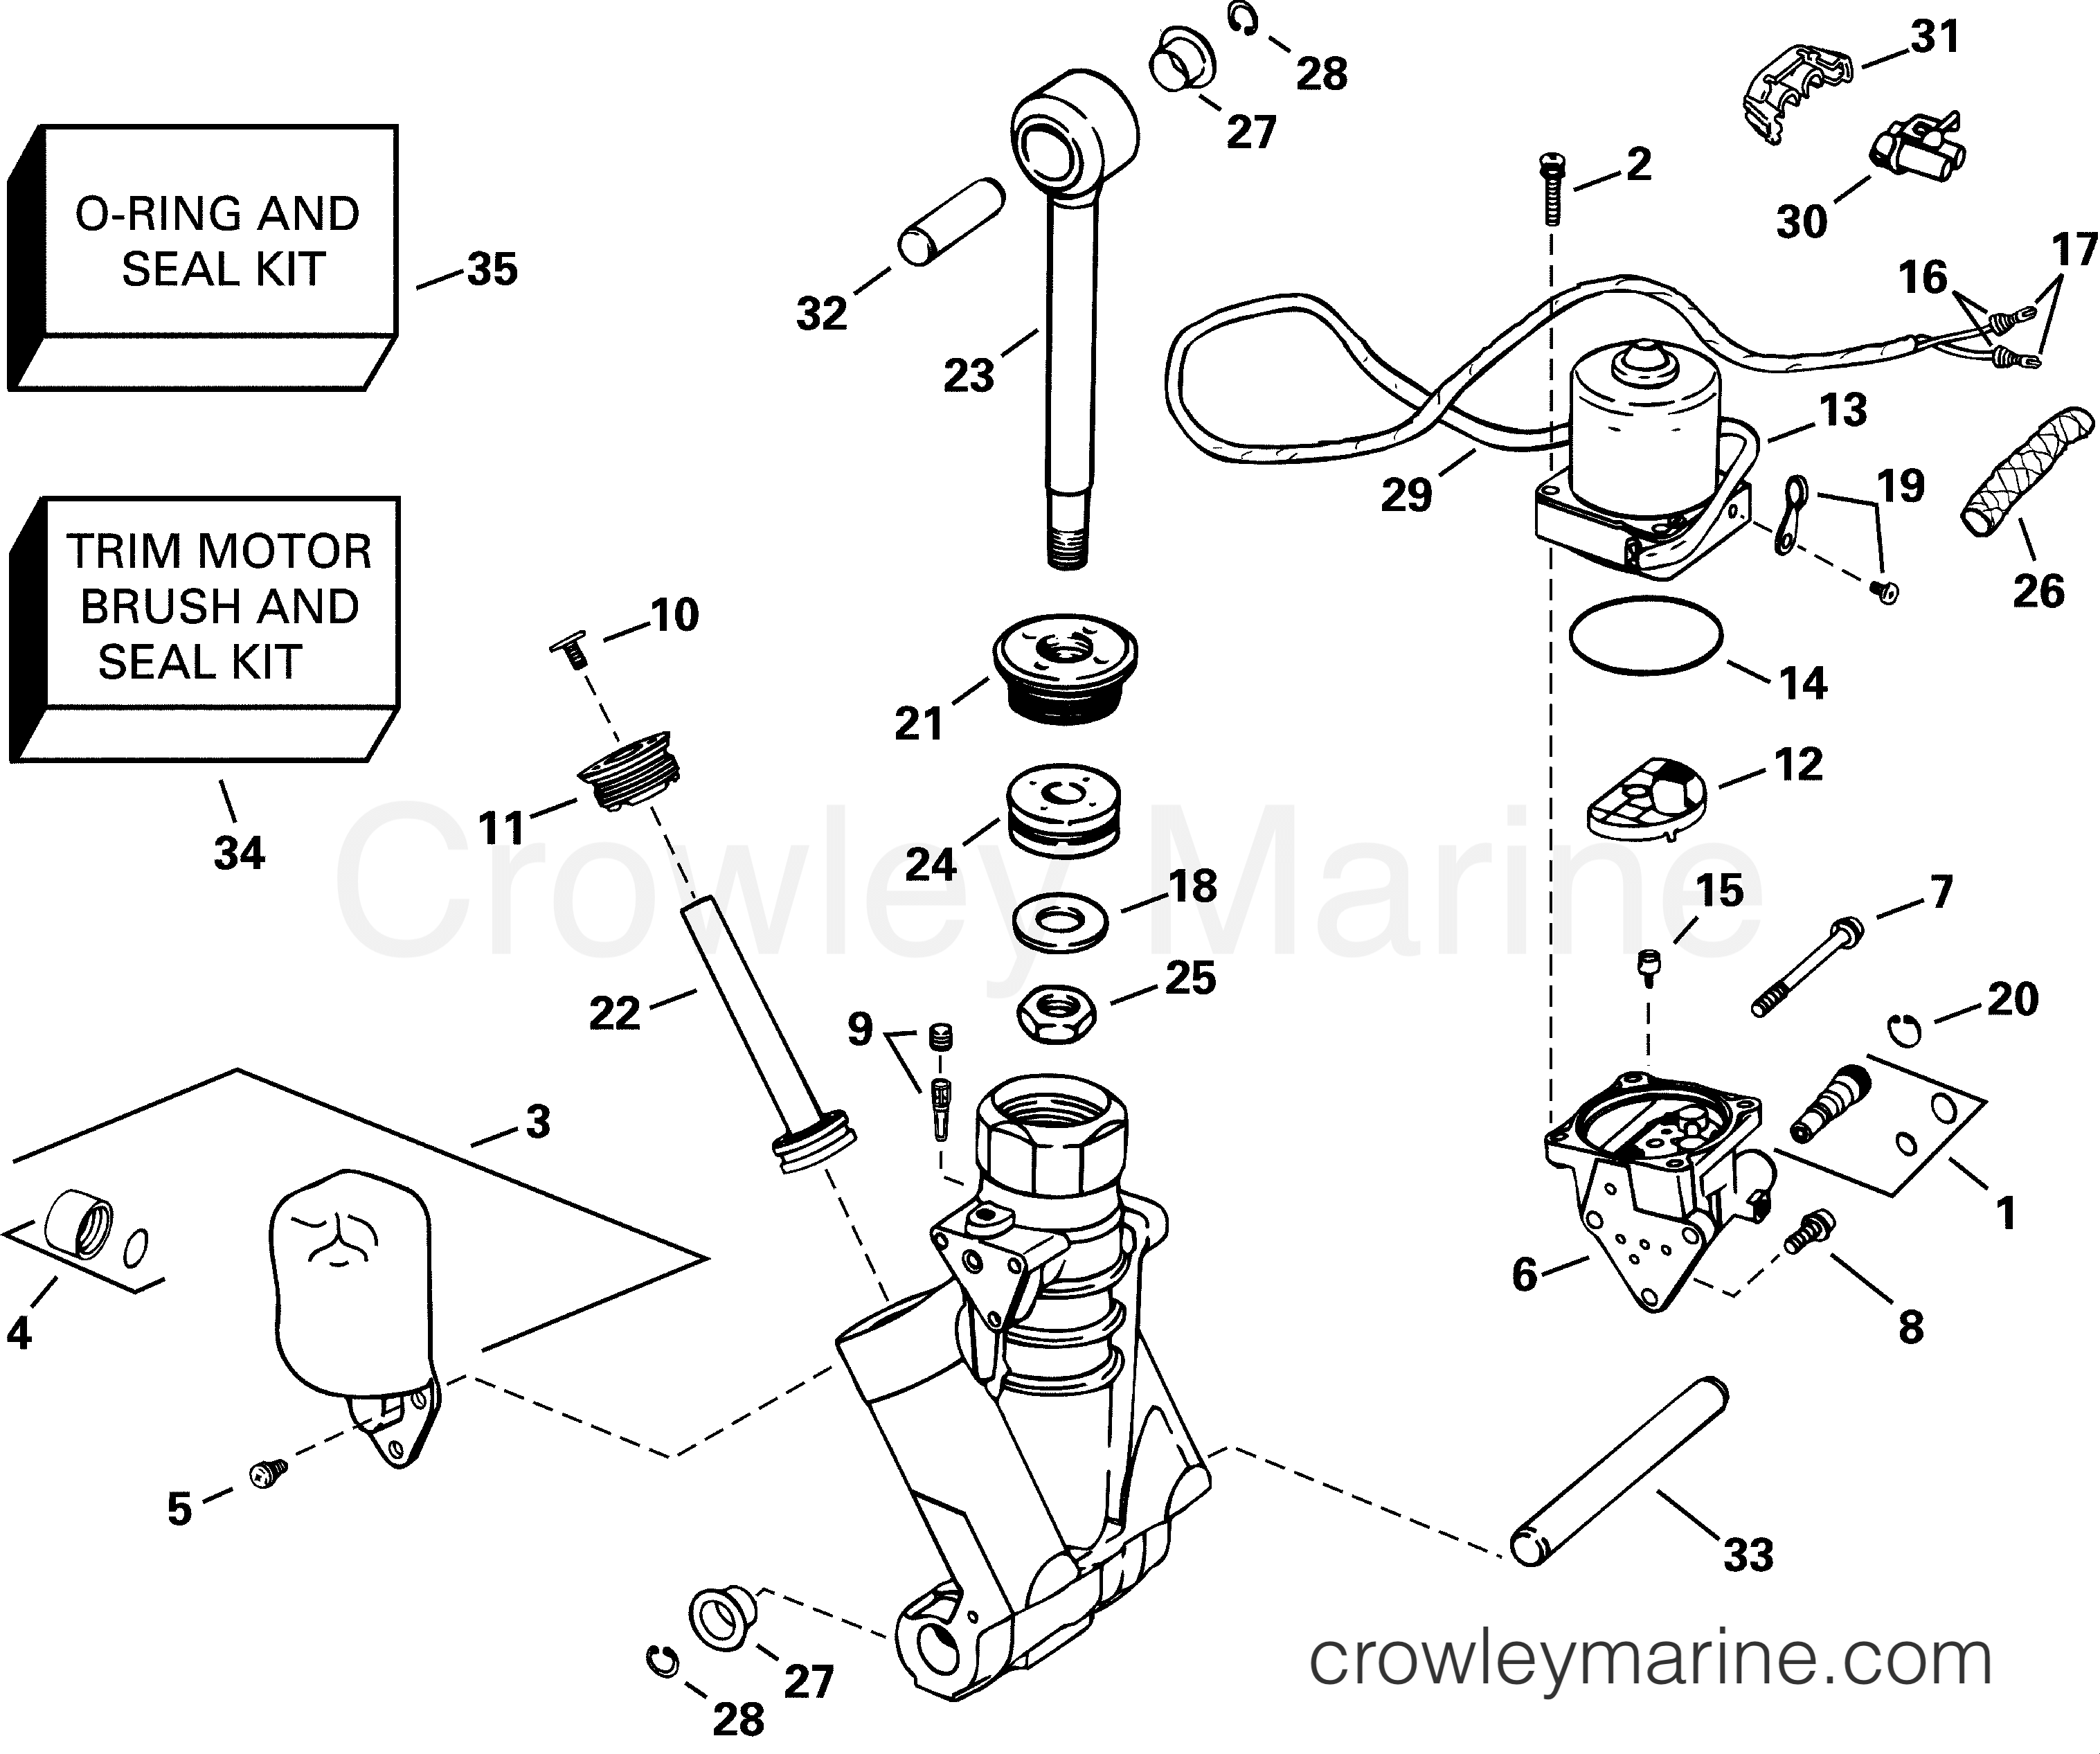 Omc Trim Tilt System Diagram Electrical Wiring Diagrams Brp Evinrude Ignition Switch Power Hydraulic Assembly 2001 Outboards 225 Johnson Starter Circuit